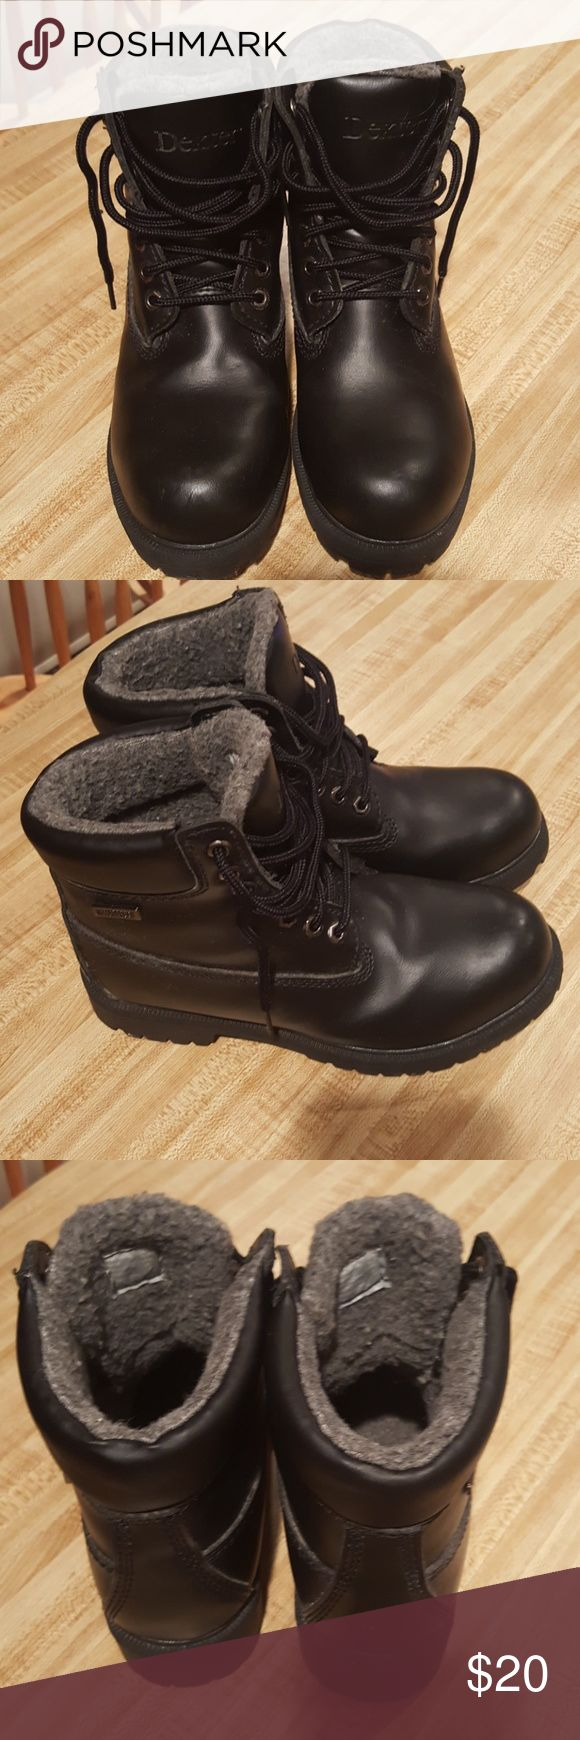 Waterproof Dexter Winter Boots Black Boot With Gray Fleece Lined Men's Winter Snow Boots. Worn once before my son grew and the seasons changed here! Size 7. New England Based Company in case you're not familiar with the brand. Dexter Shoes Boots